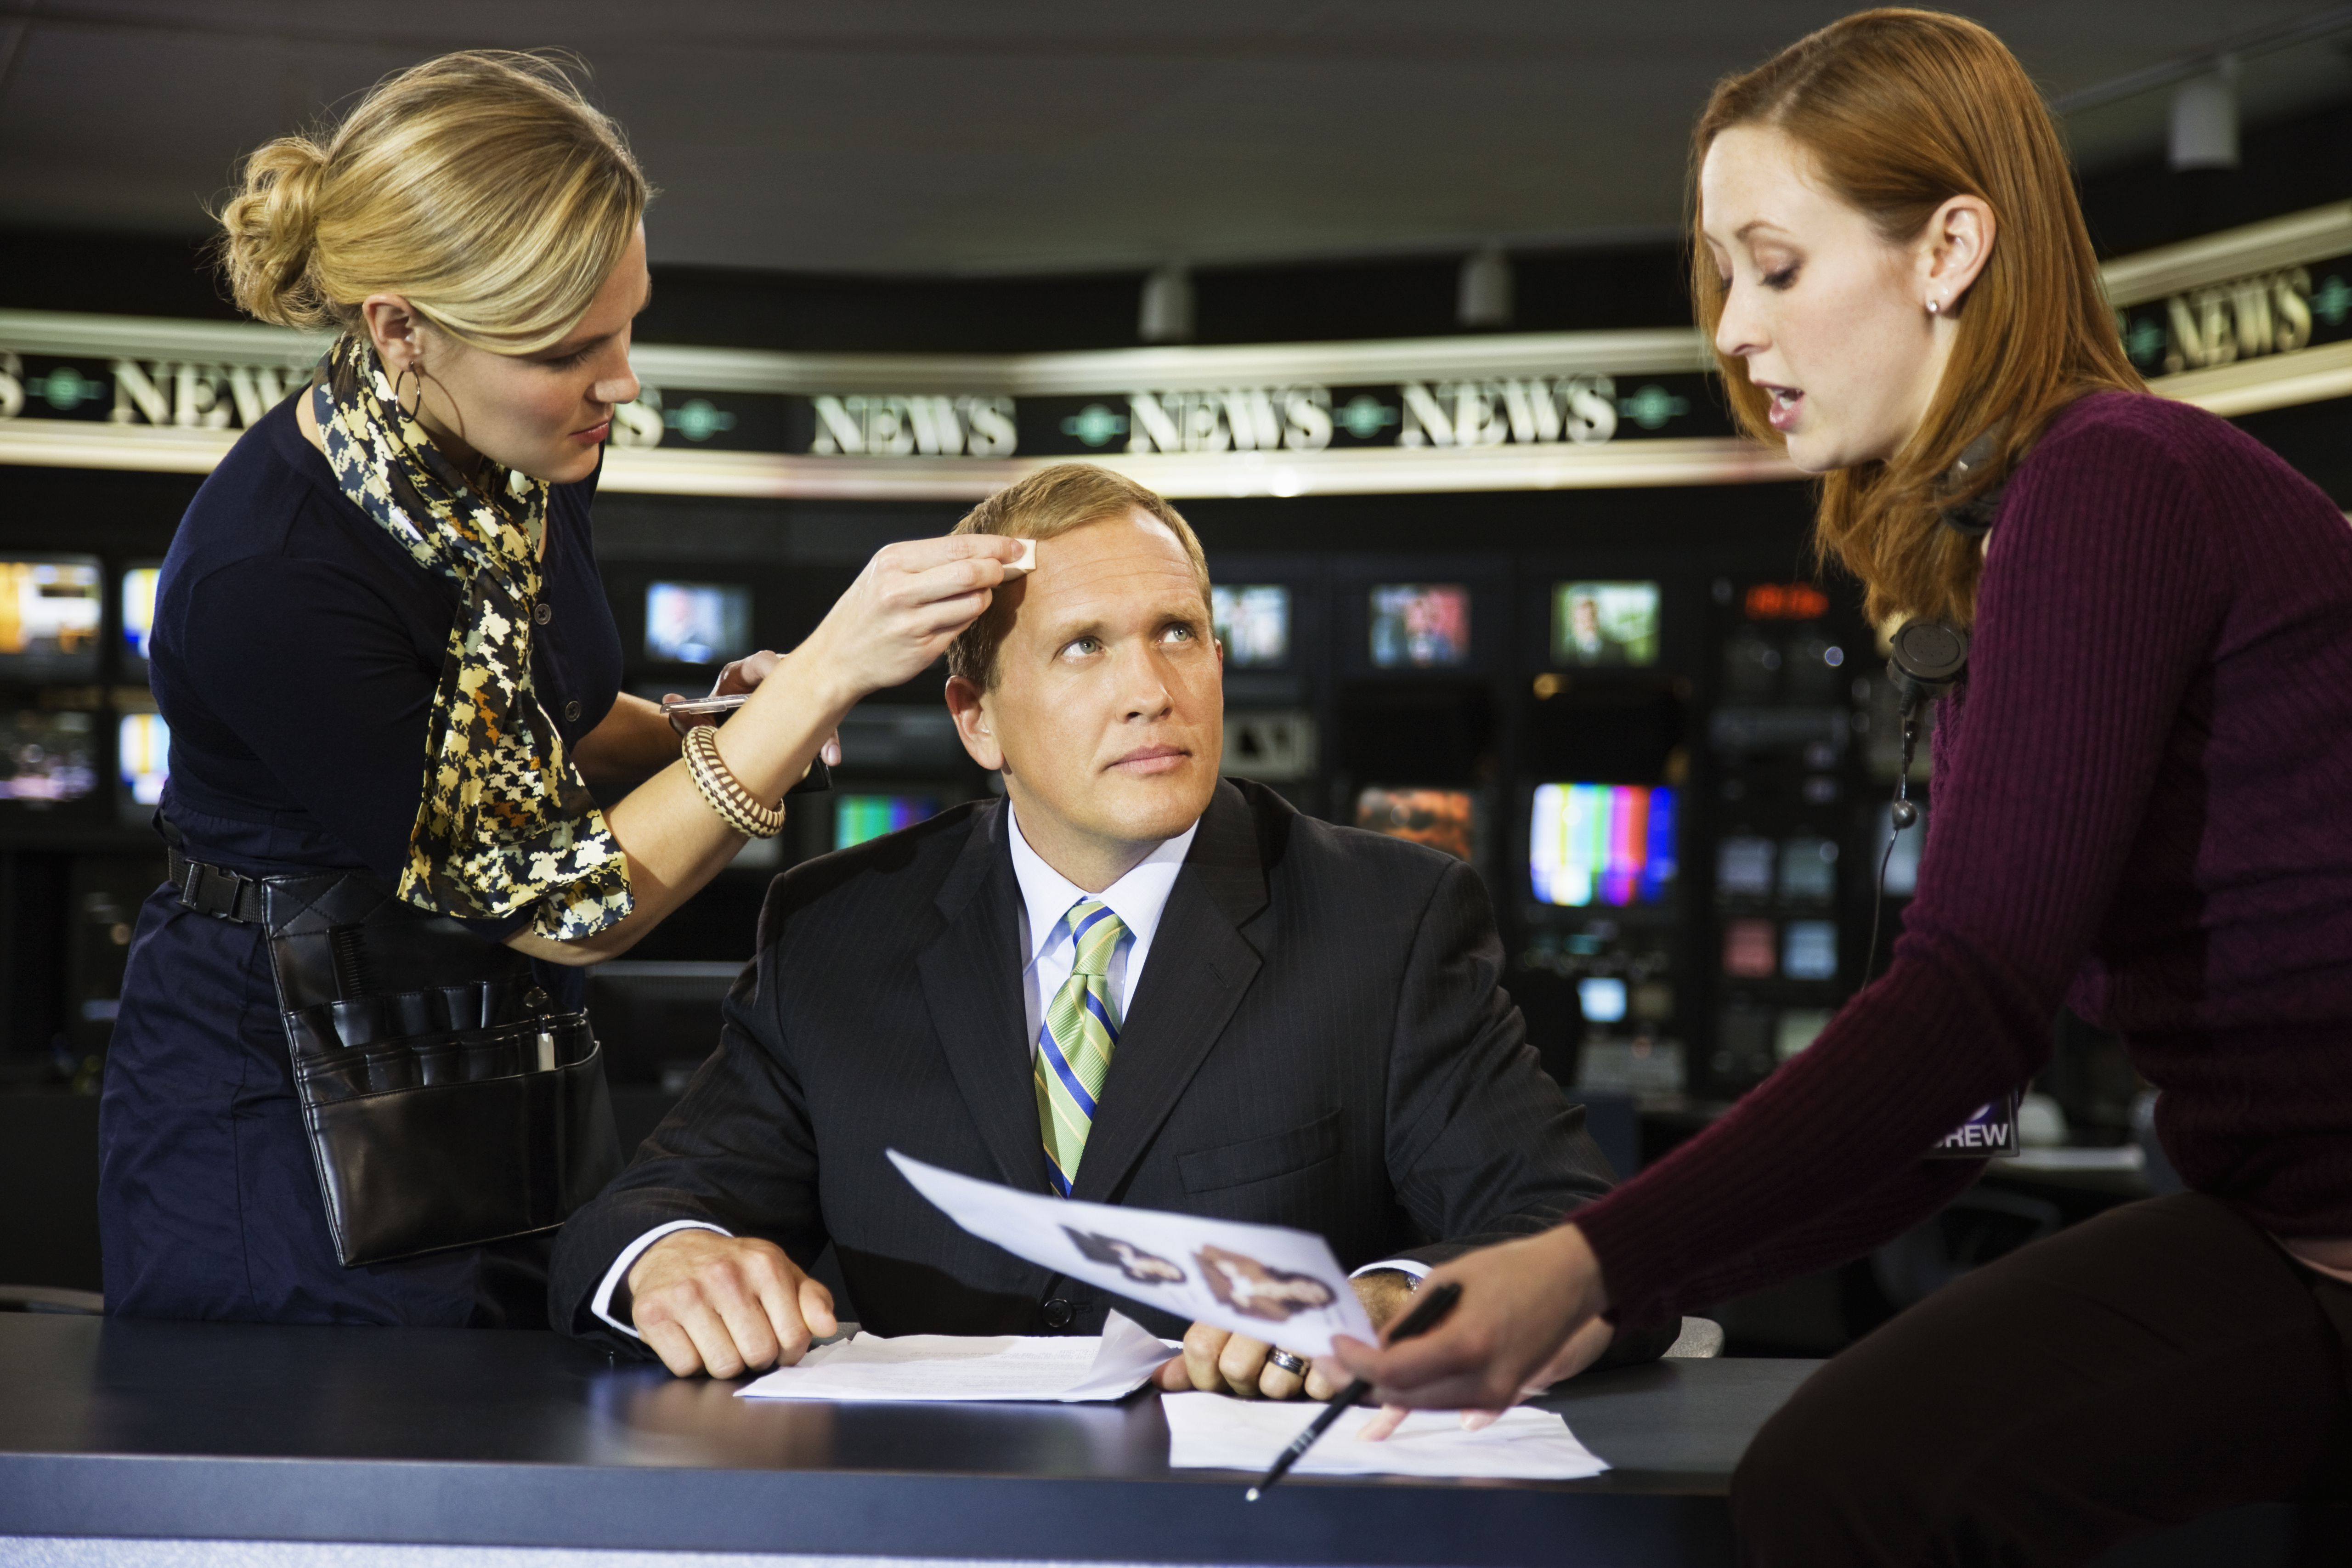 Male newscaster getting ready for interview